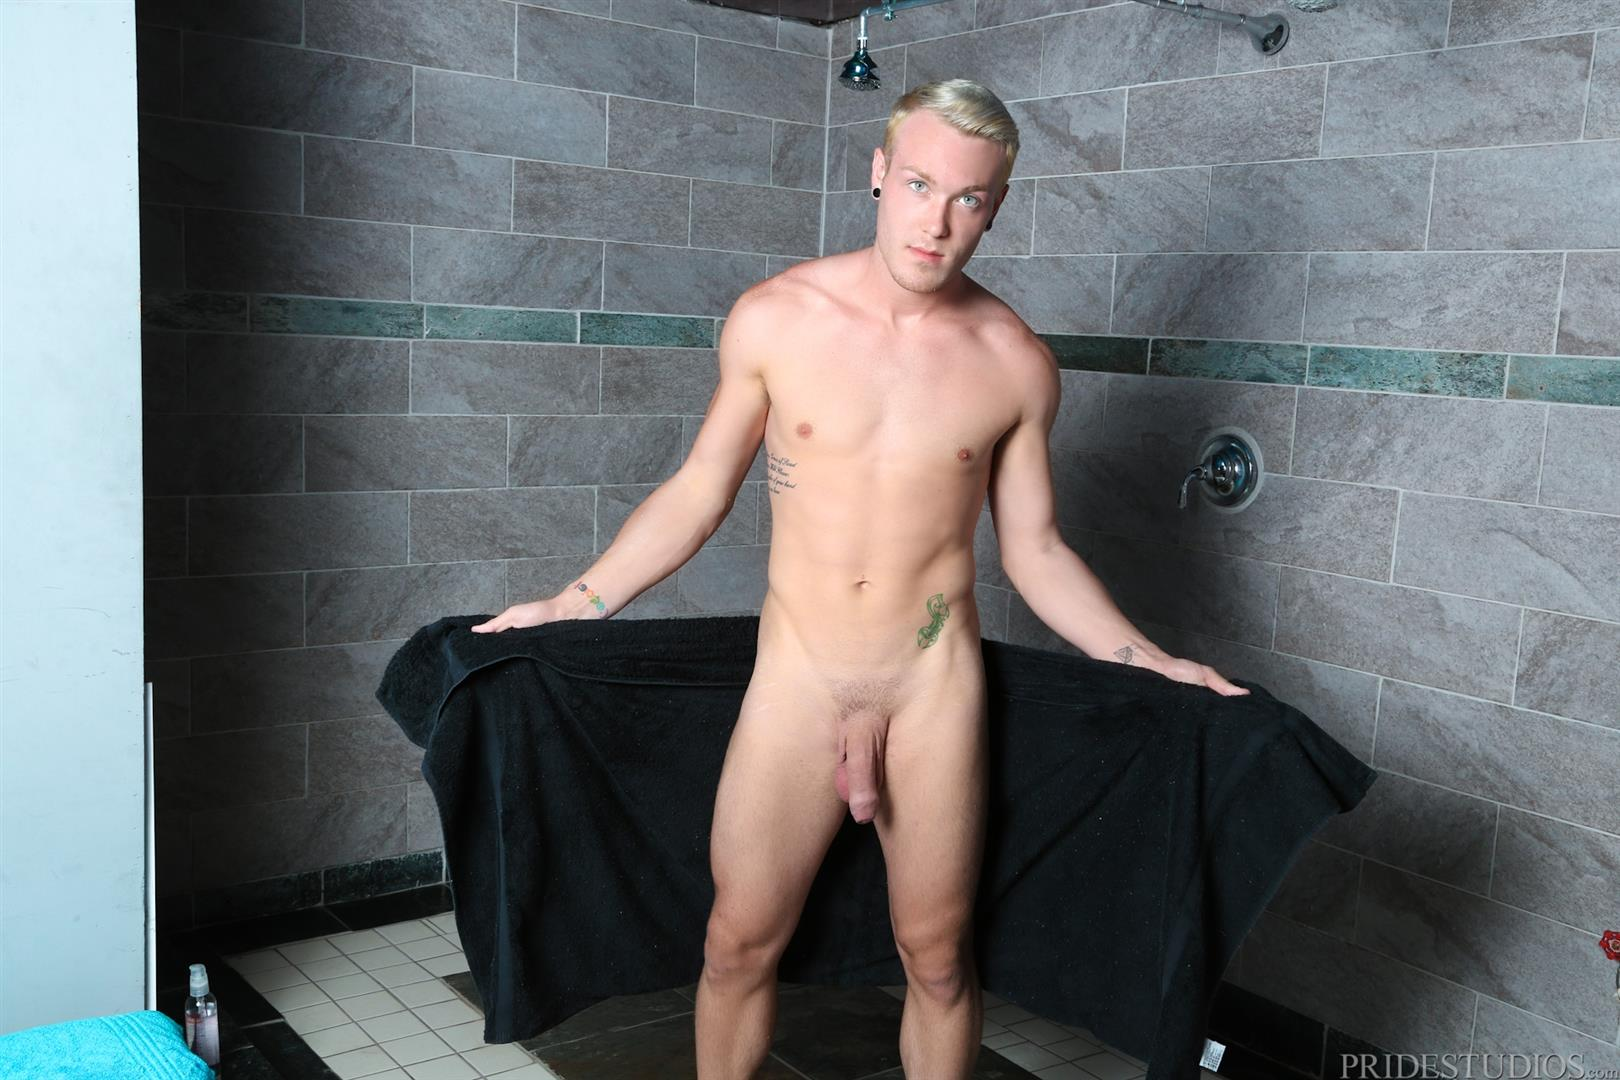 Extra Big Dicks Kaydin Bennett Athletic Guy In The Shower Jerking Off Big Uncut Cock Amateur Gay Porn 06 Athletic Stud Showering And Stroking His Big Uncut Cock